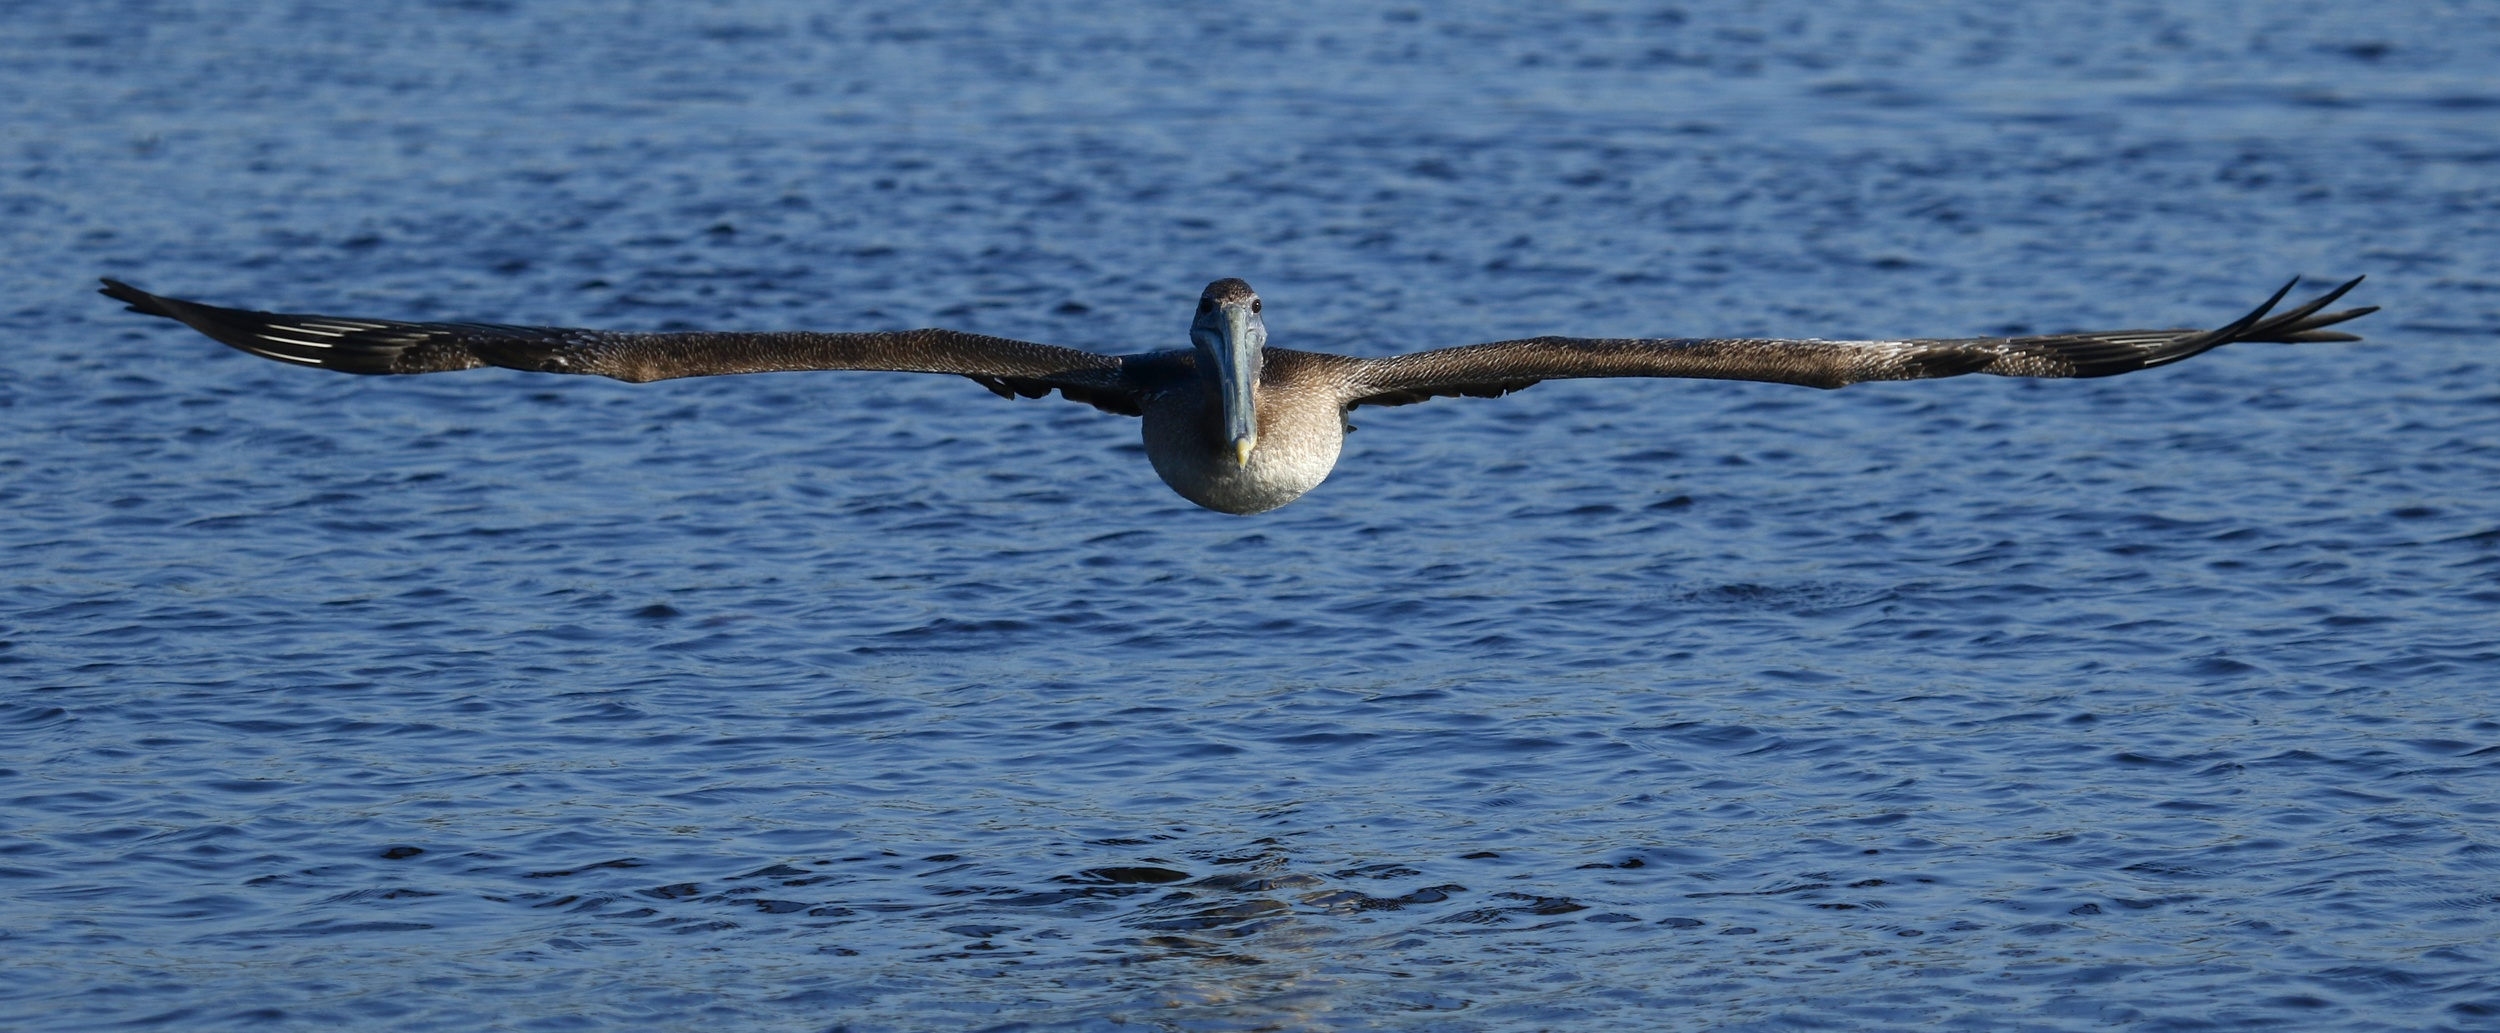 With a wing span that can exceed 8 foot this juvenile Brown  Pelican has no problem keeping up with the crab boat.